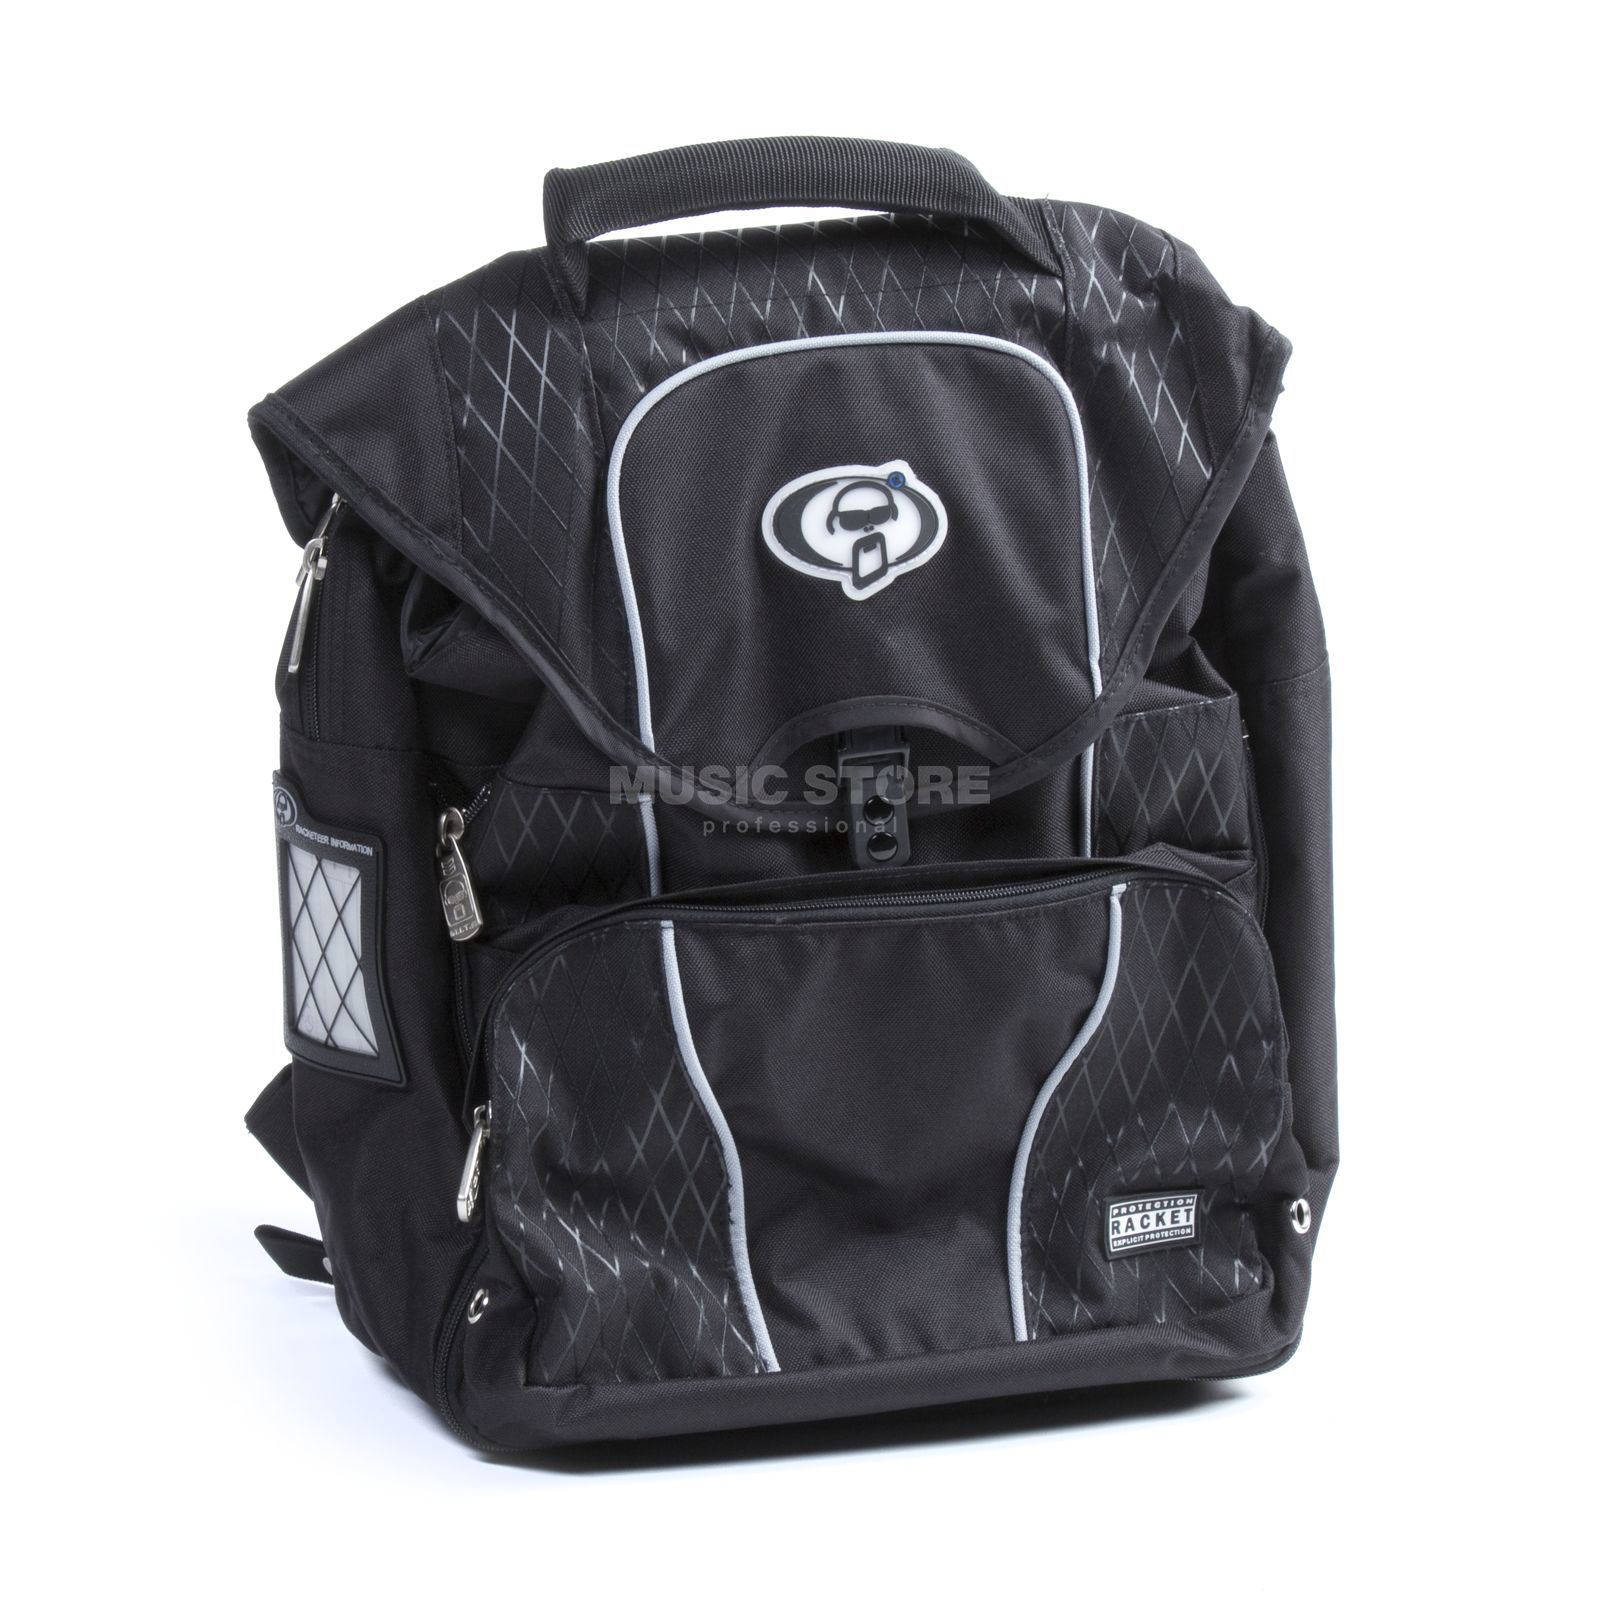 Protection Racket 17619 Classroom Backpack Product Image